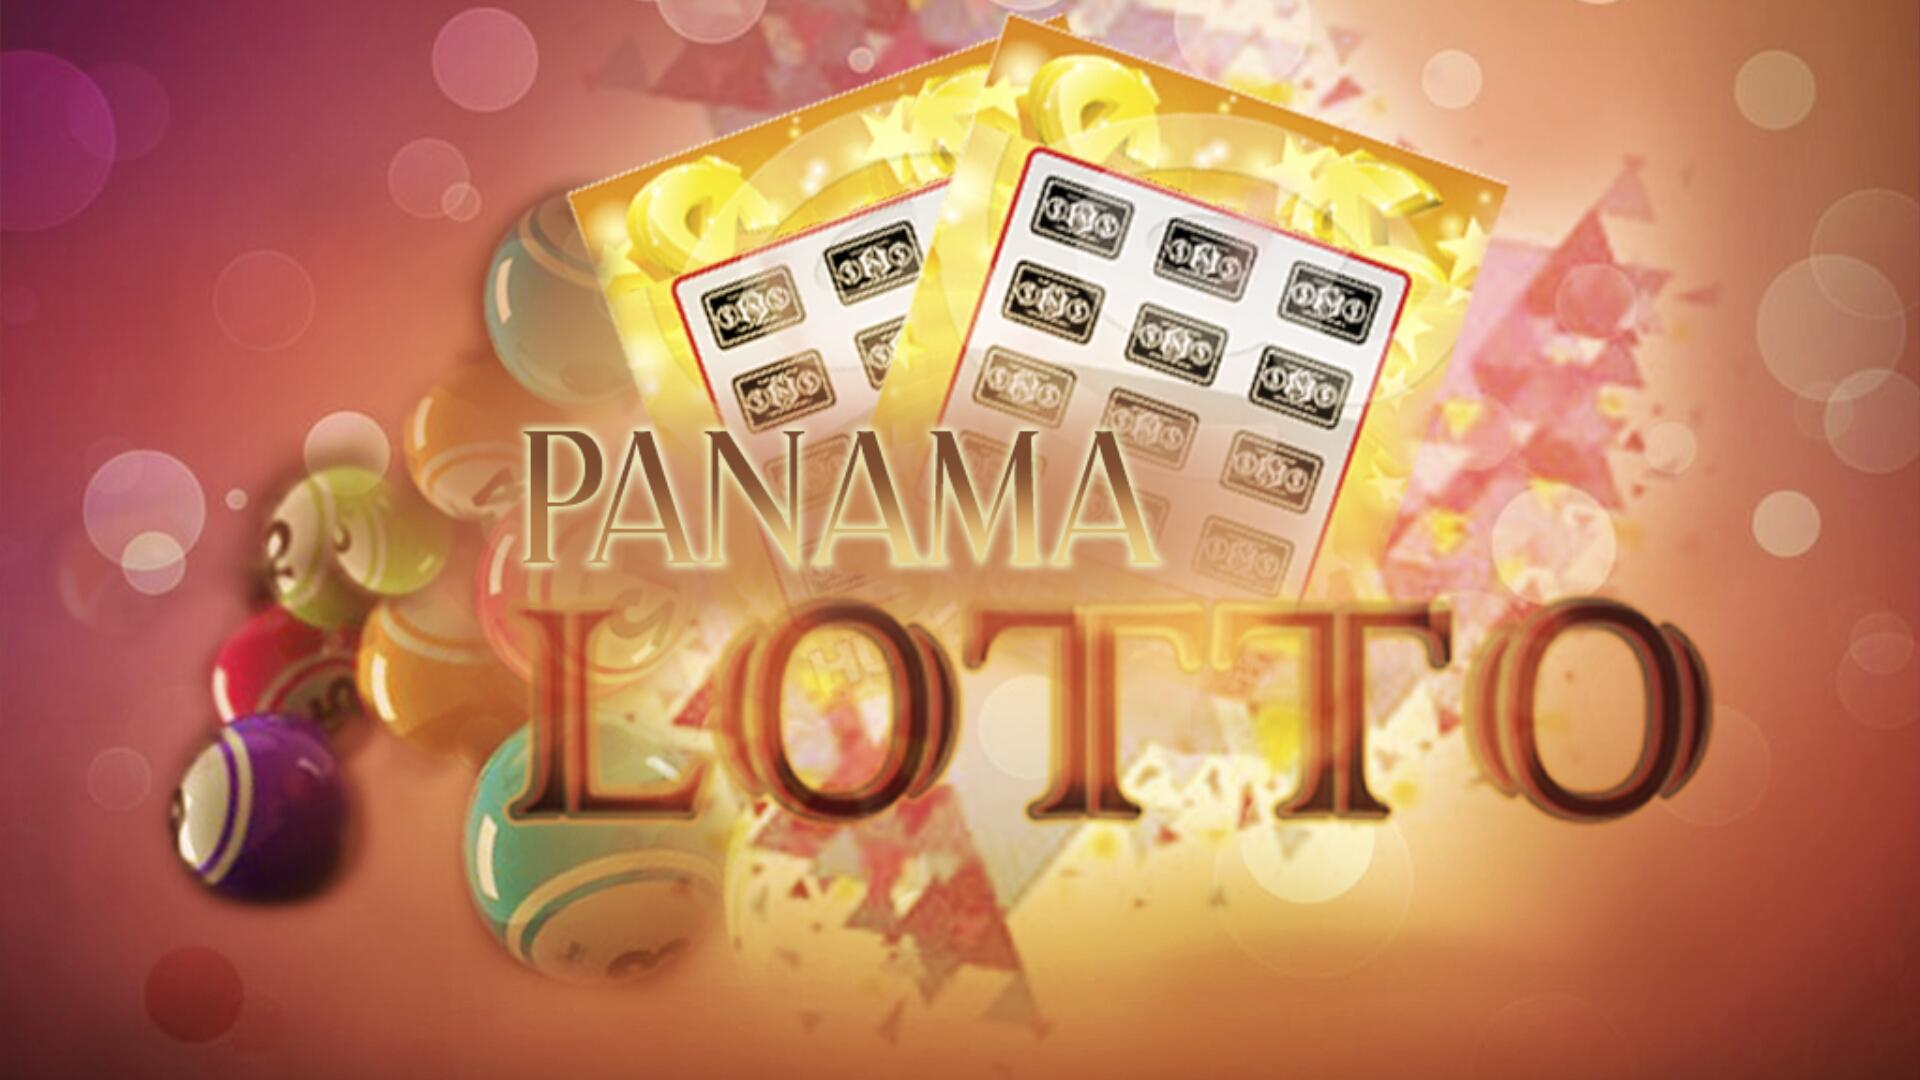 Live Panama Lottery 4D for Android - APK Download